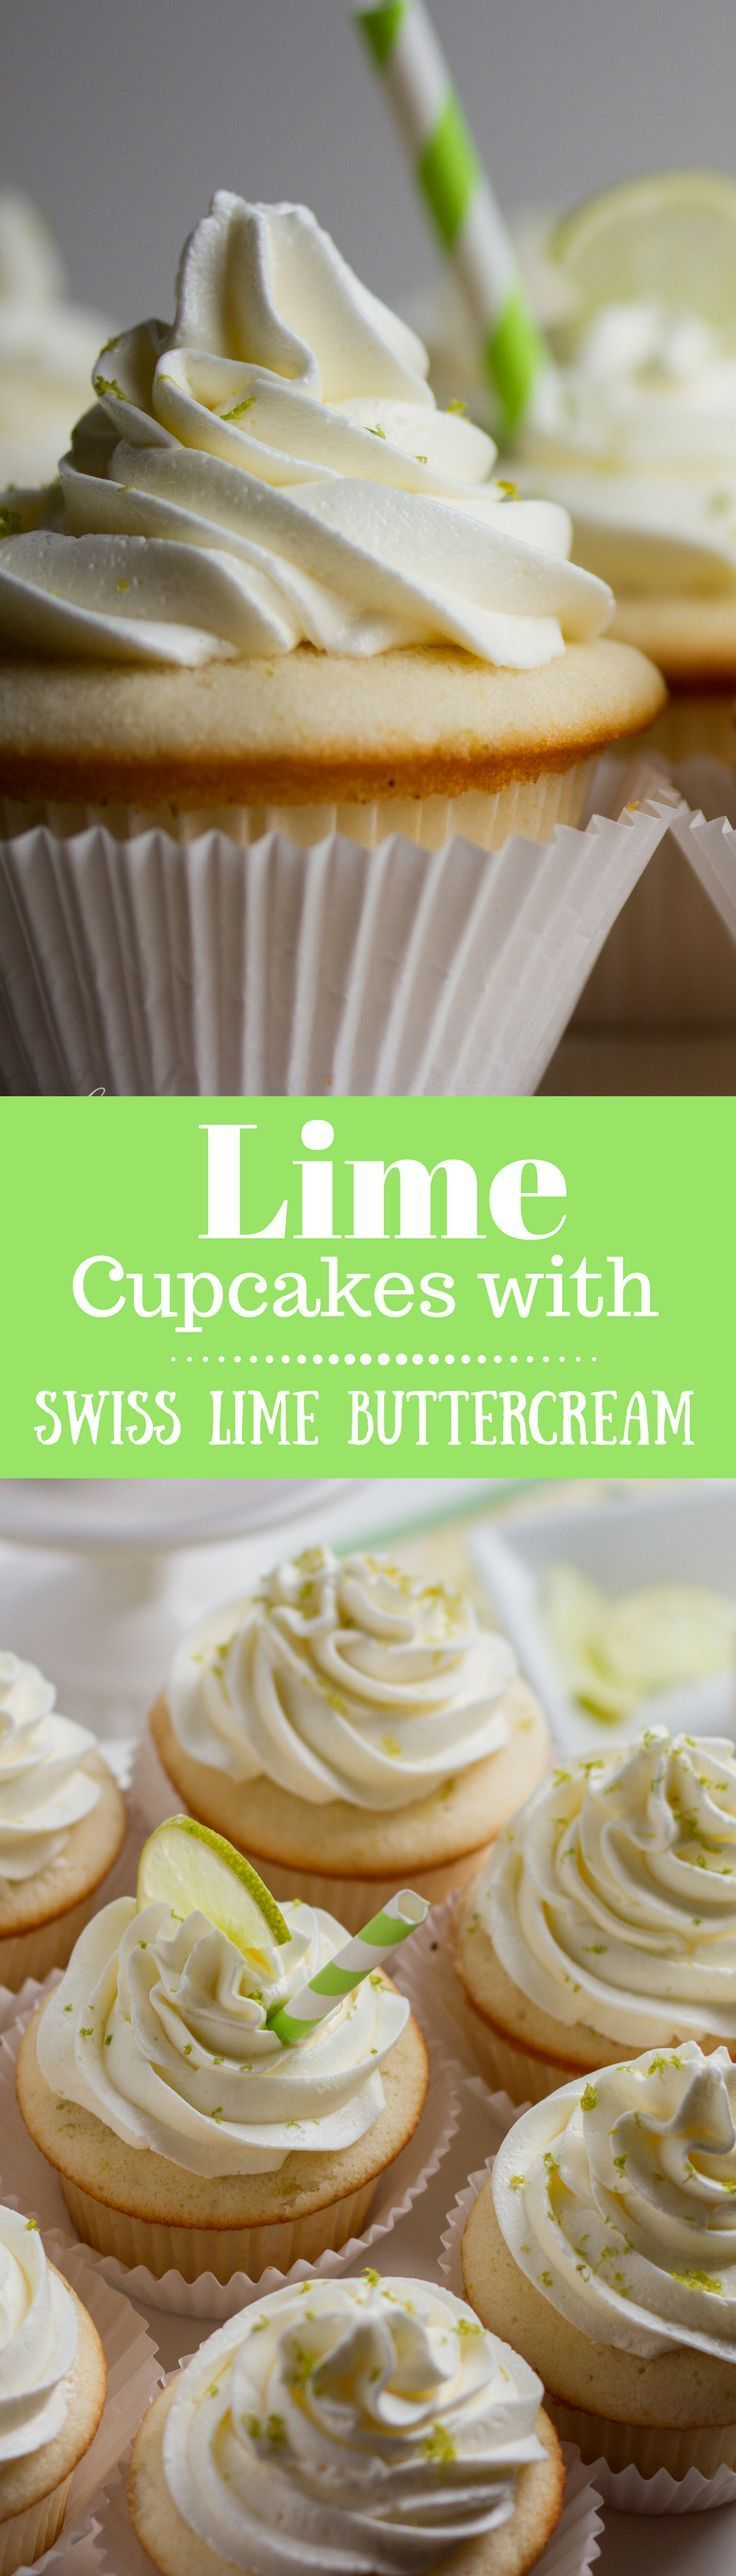 Tender white Lime Cupcakes with Swiss Lime Buttercream and just the right amount of zing from the lime juice.  http://www.savingdessert.com